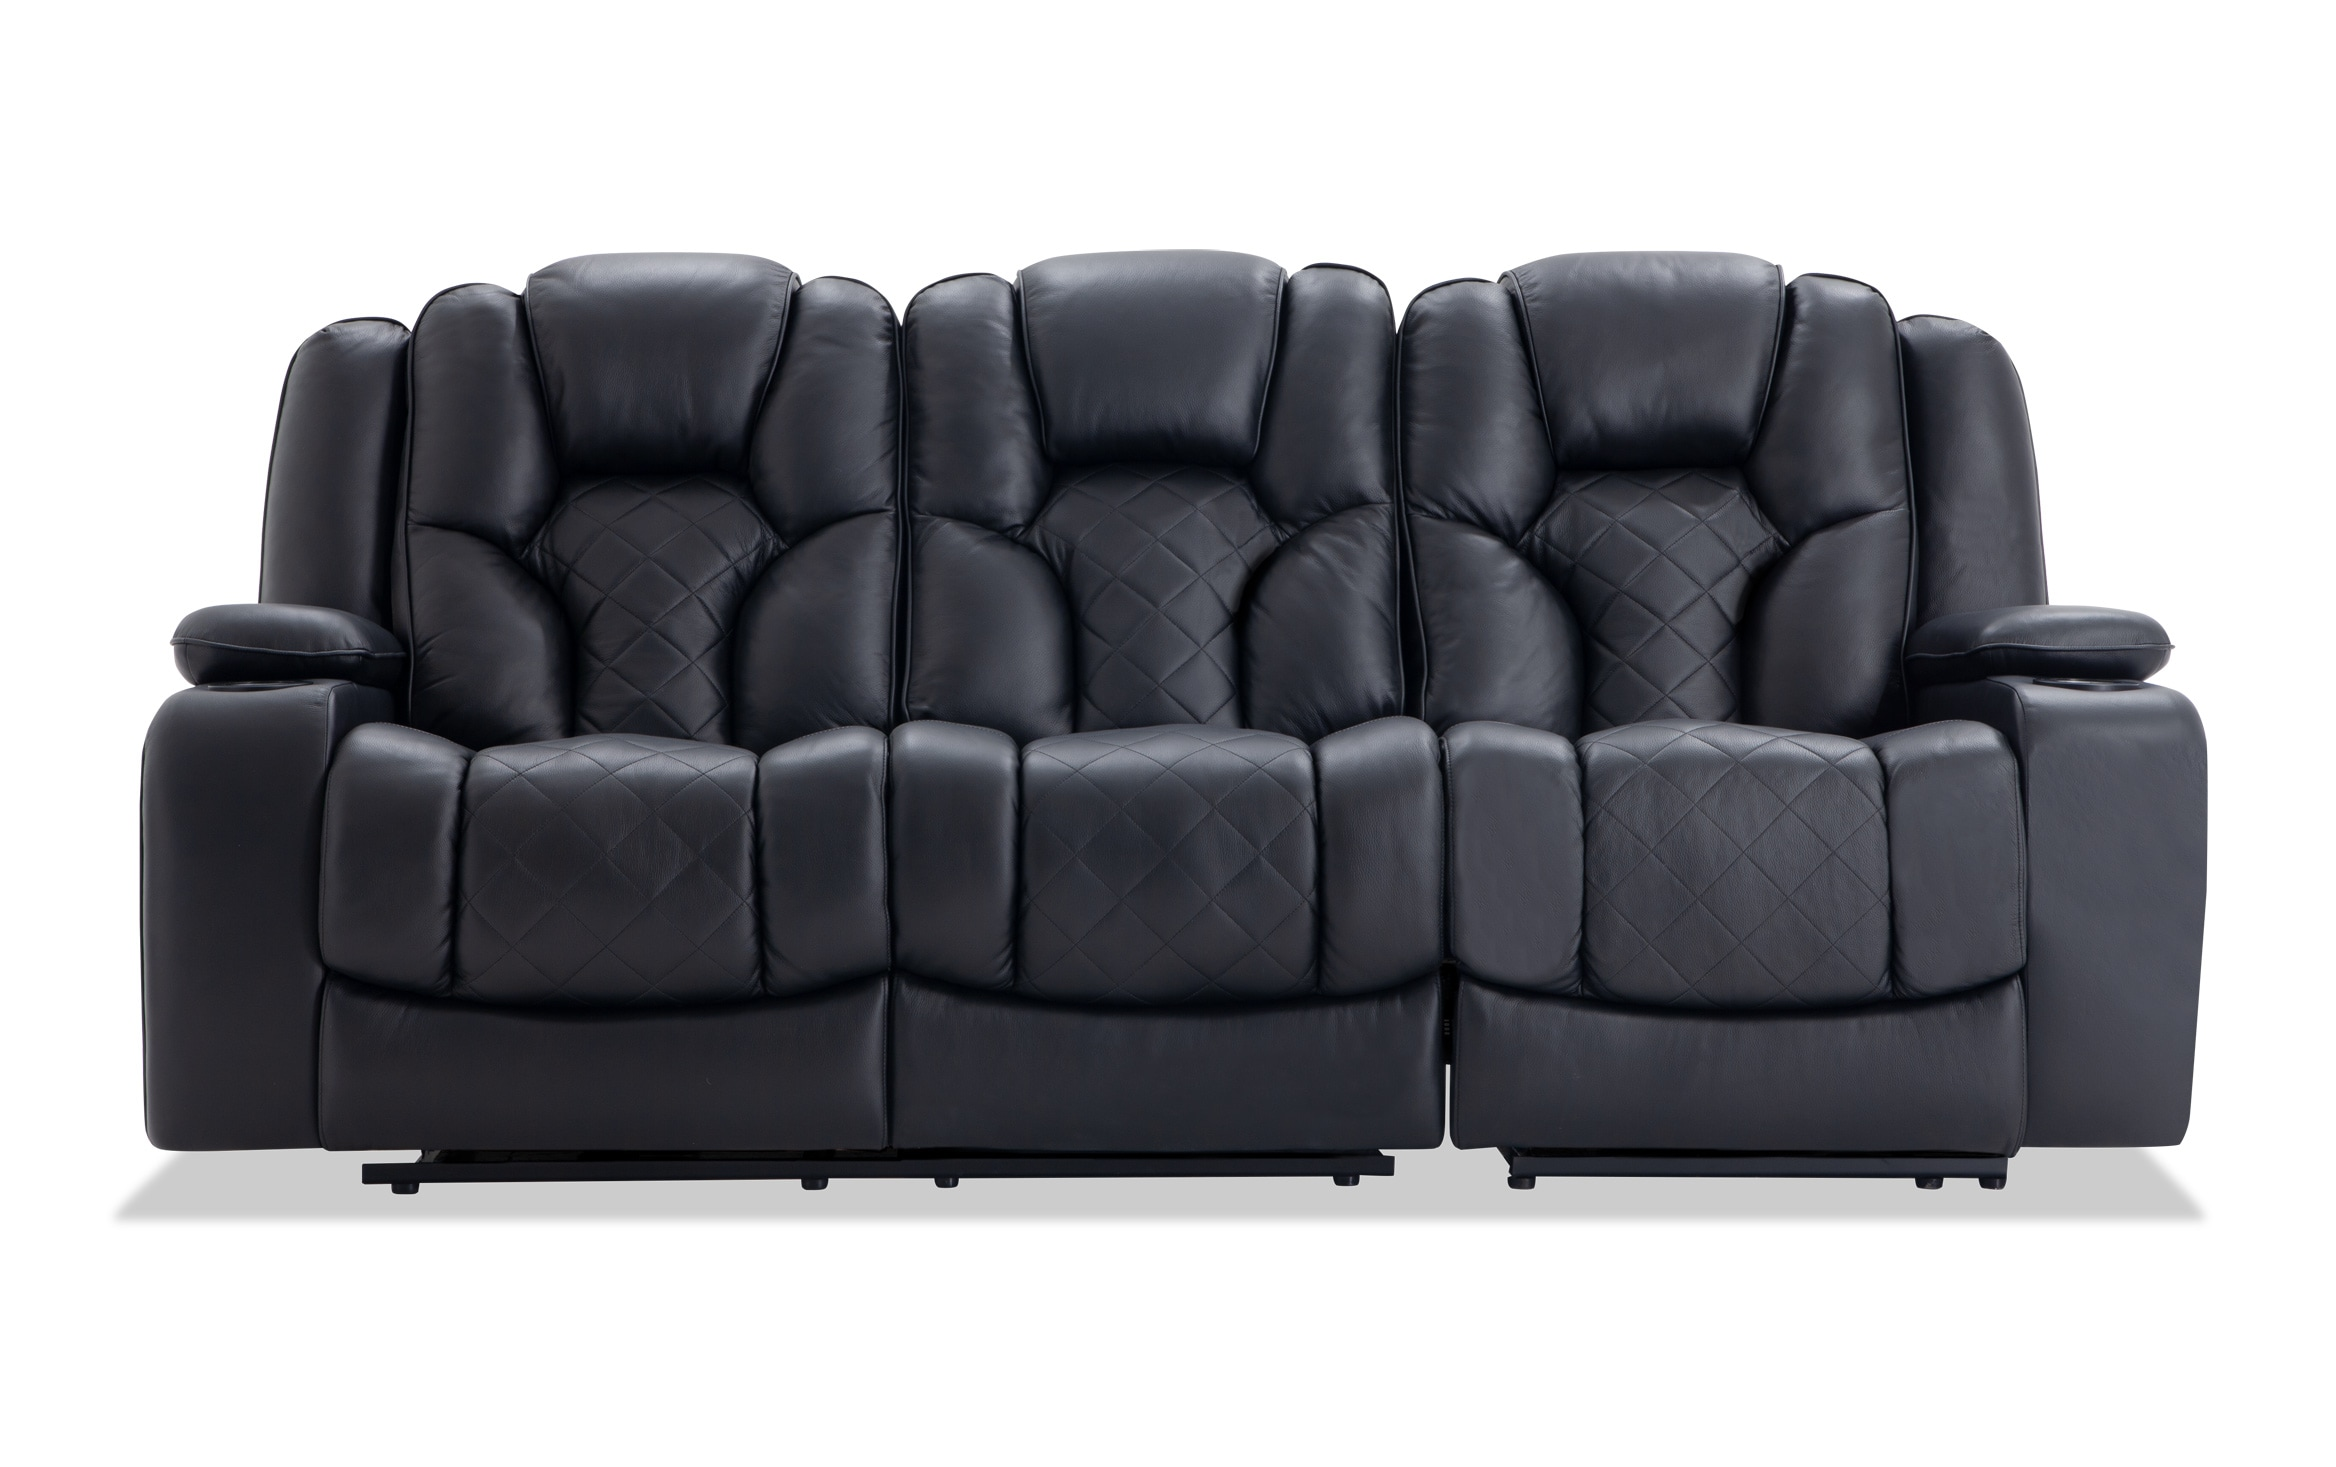 - Panther Black Leather Dual Power Reclining Sofa Bobs.com